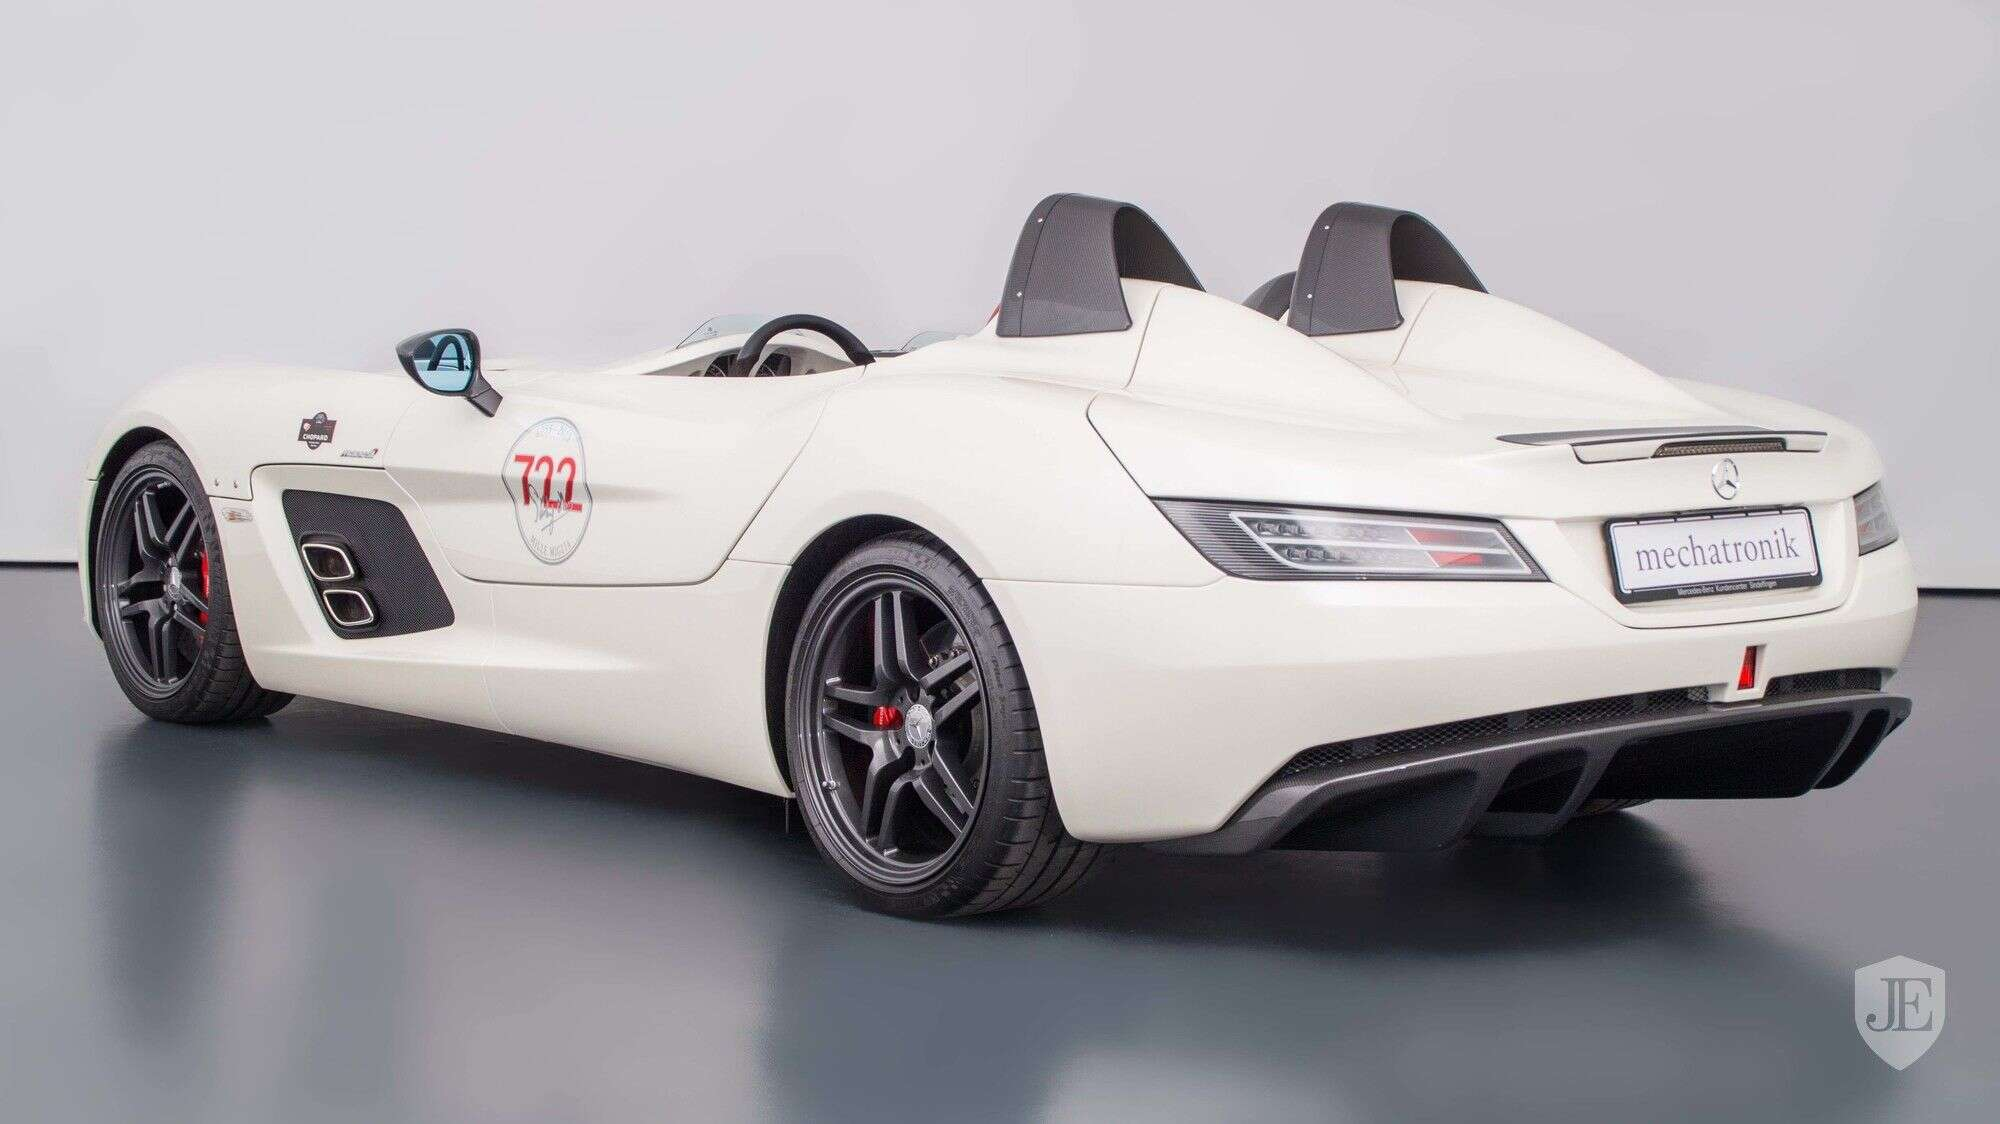 ultra-rare mercedes-benz slr mclaren stirling moss listed for sale